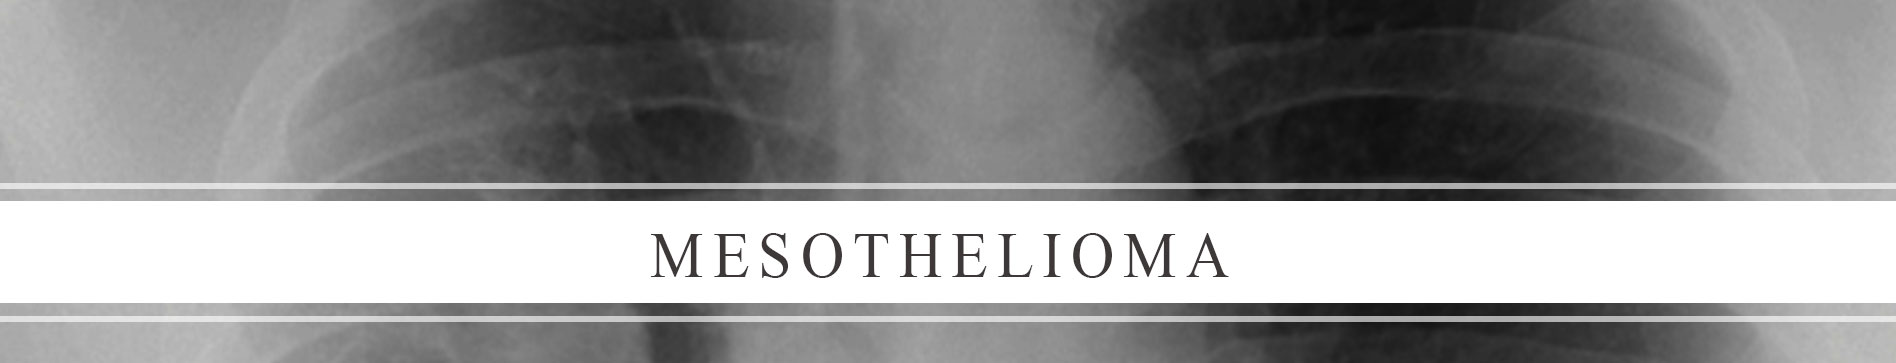 Mesothelioma and Asbestos Exposure Attorney in Texas